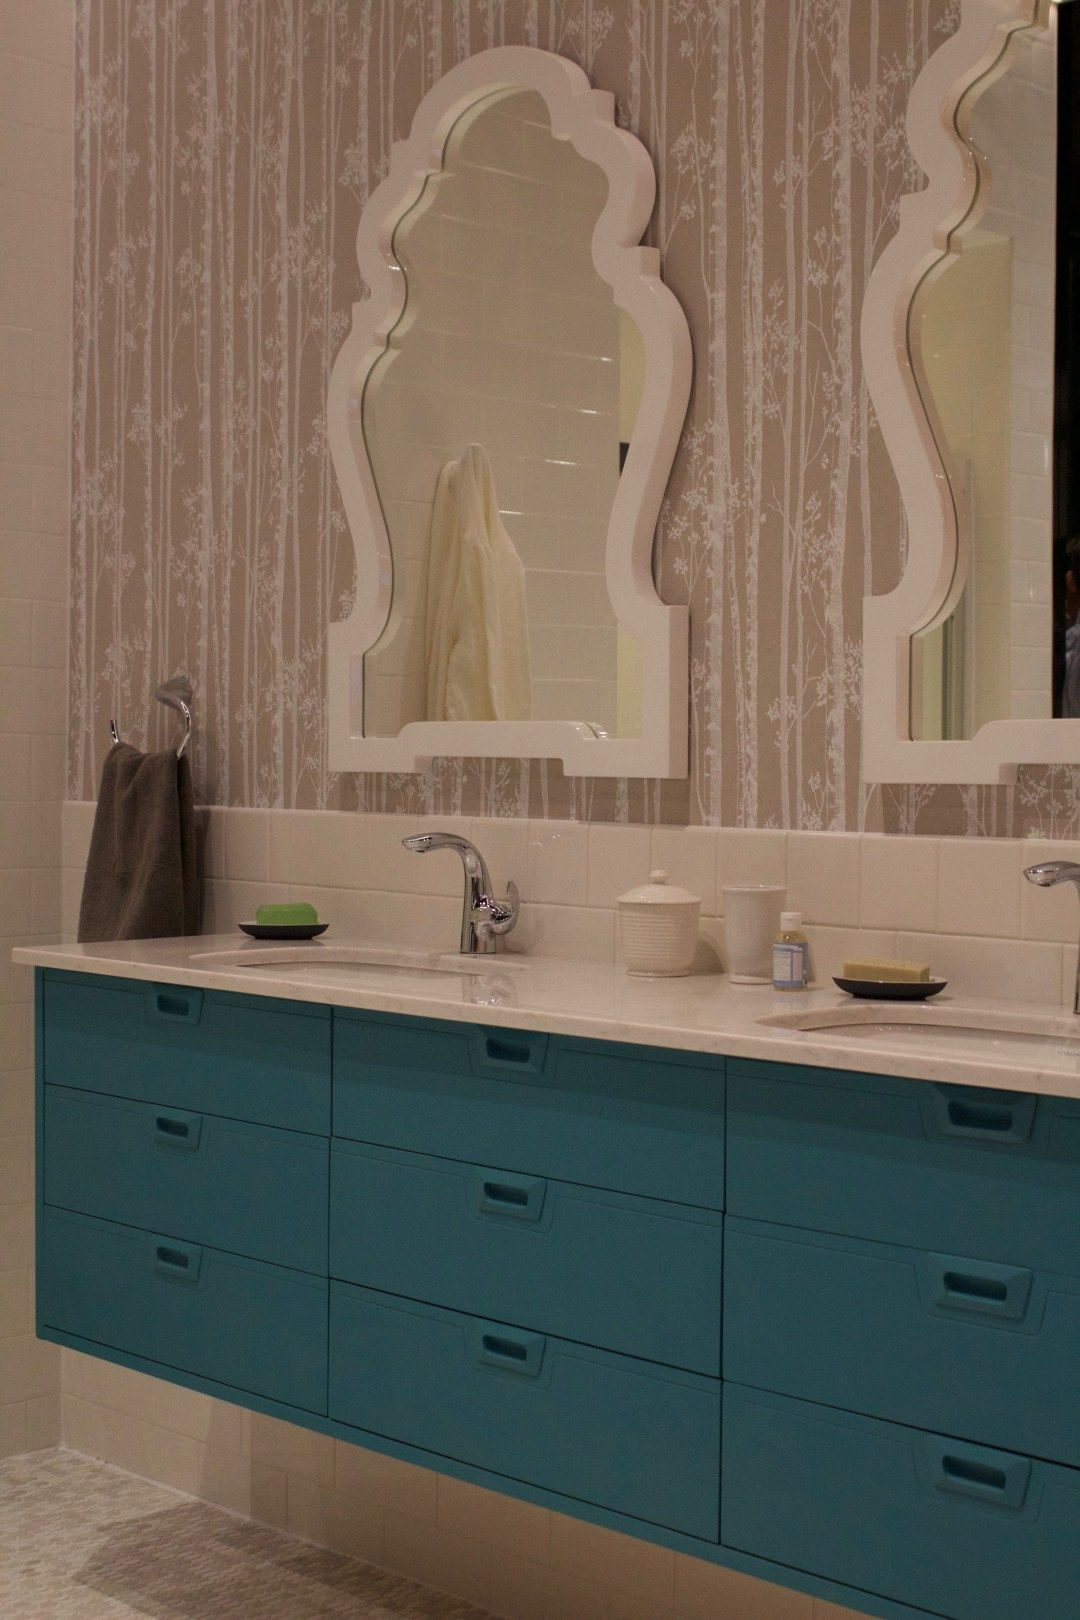 Biggest kitchen bath trends to carry you into bathrooms